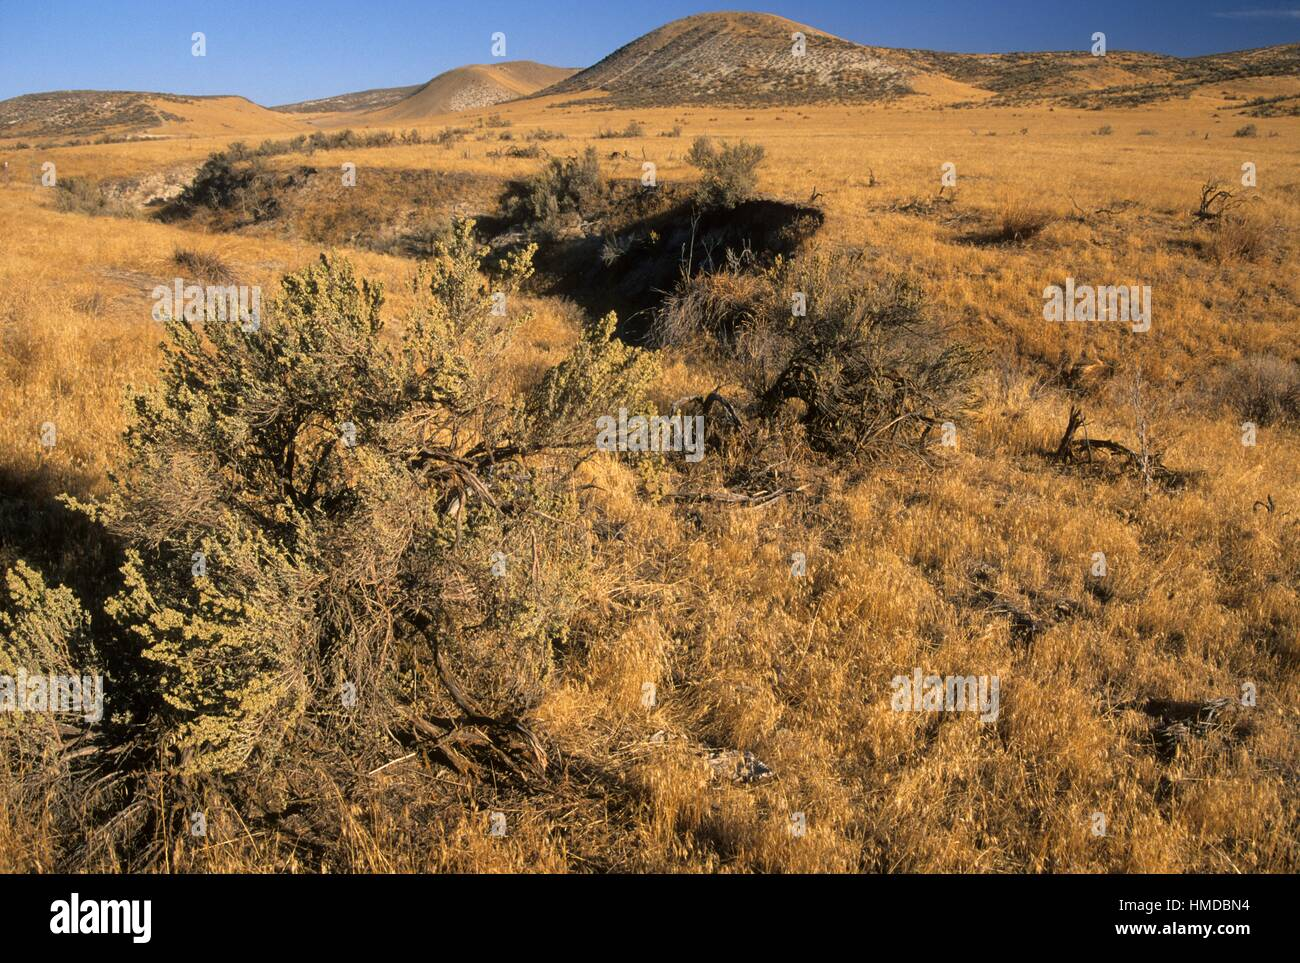 oregon trail ruts stock photos oregon trail ruts stock images alamy. Black Bedroom Furniture Sets. Home Design Ideas